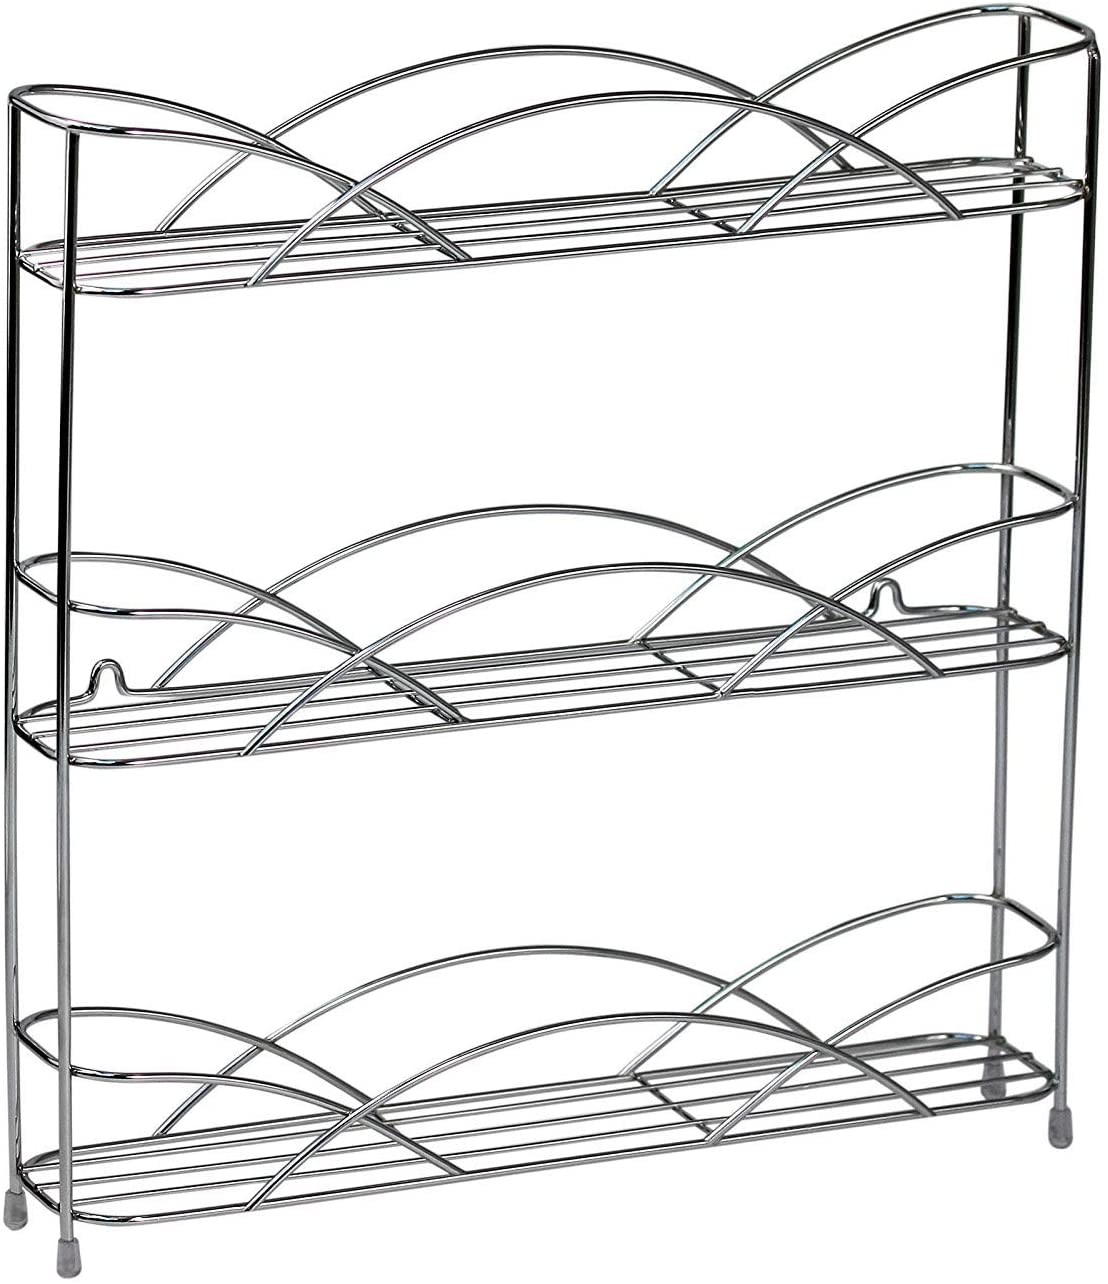 Spectrum Diversified Countertop 3-Tier Rack Kitchen Cabinet Organizer or Optional Wall-Mounted Storage, 3 Spice Shelves, Raised Rubberized Feet, Chrome